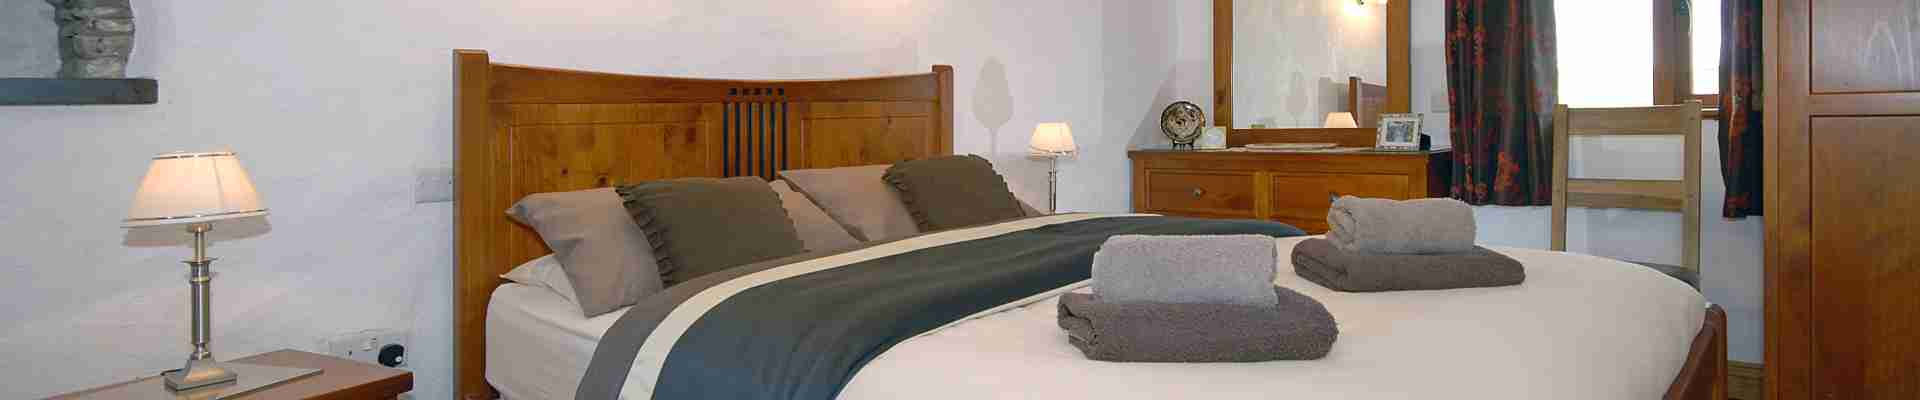 Holiday Cottages with at least One Ground Floor Bedroom & Bathroom